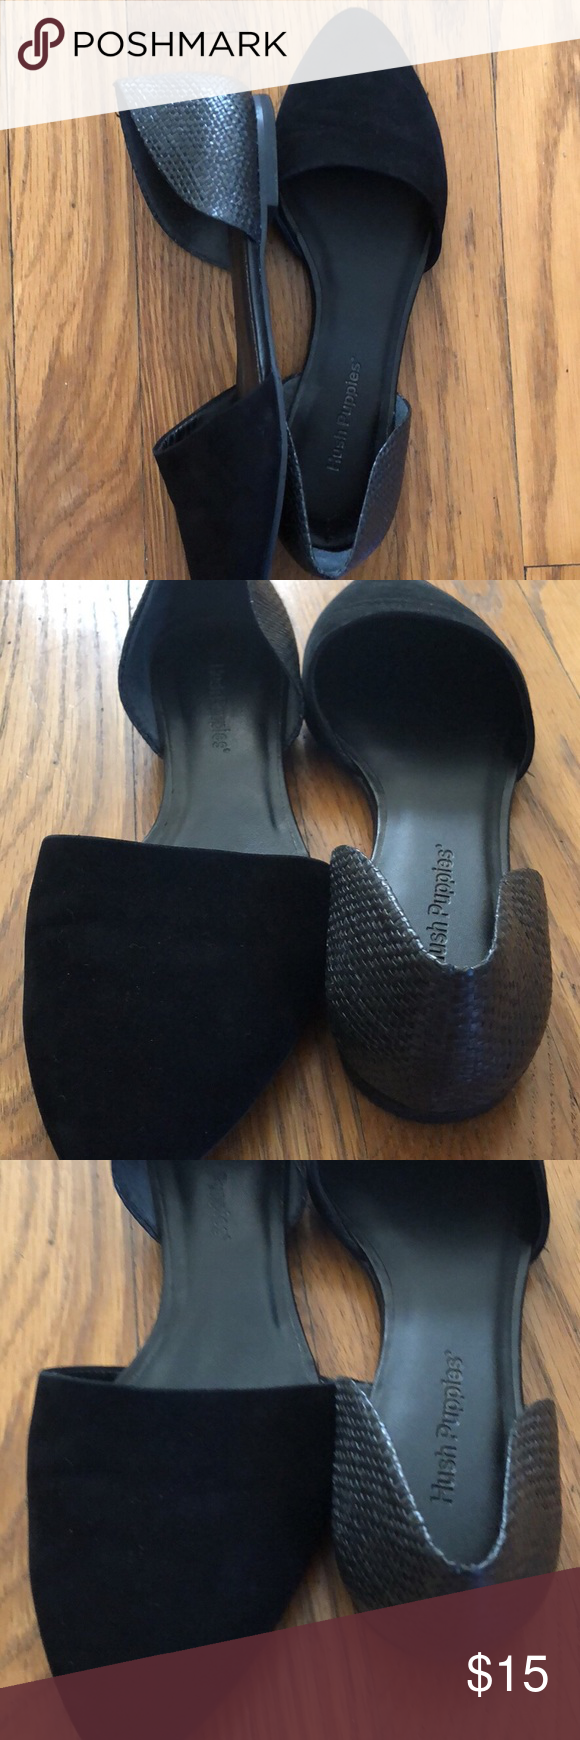 Hush puppies Black Flats (With images) Hush puppies